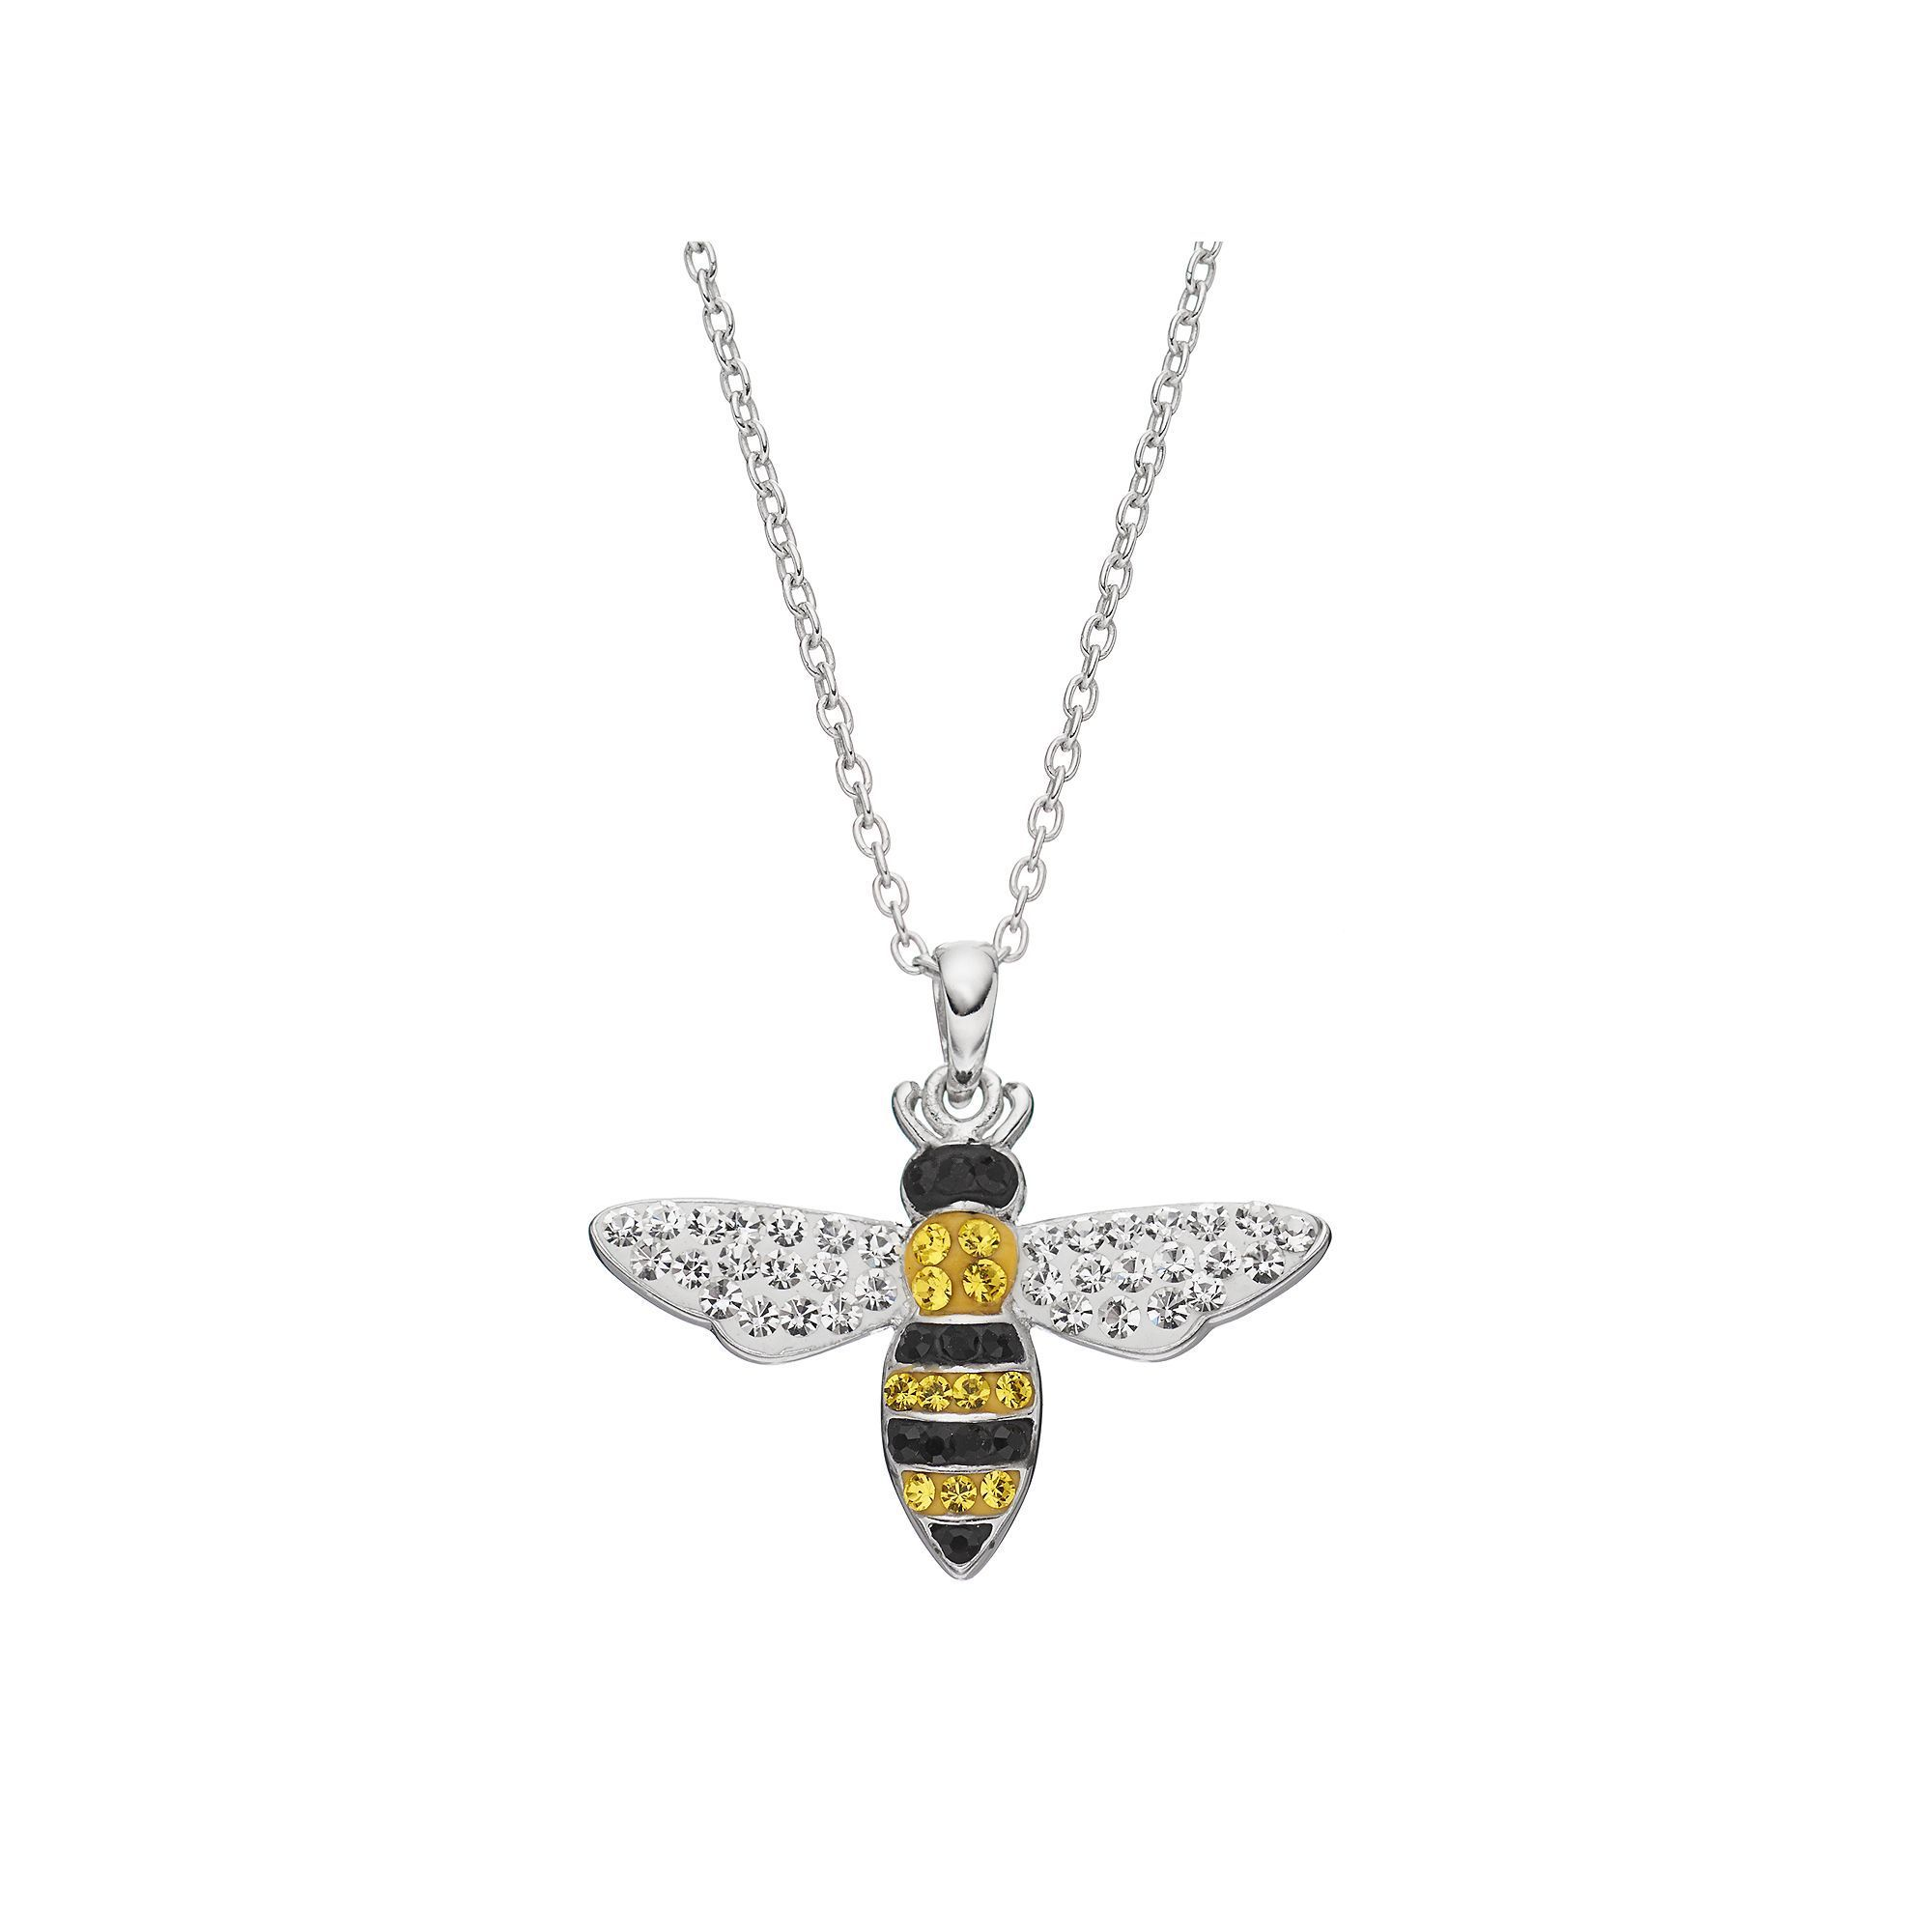 sterling bee necklace silver busy necklaces honey jewelry cosanuova pendant